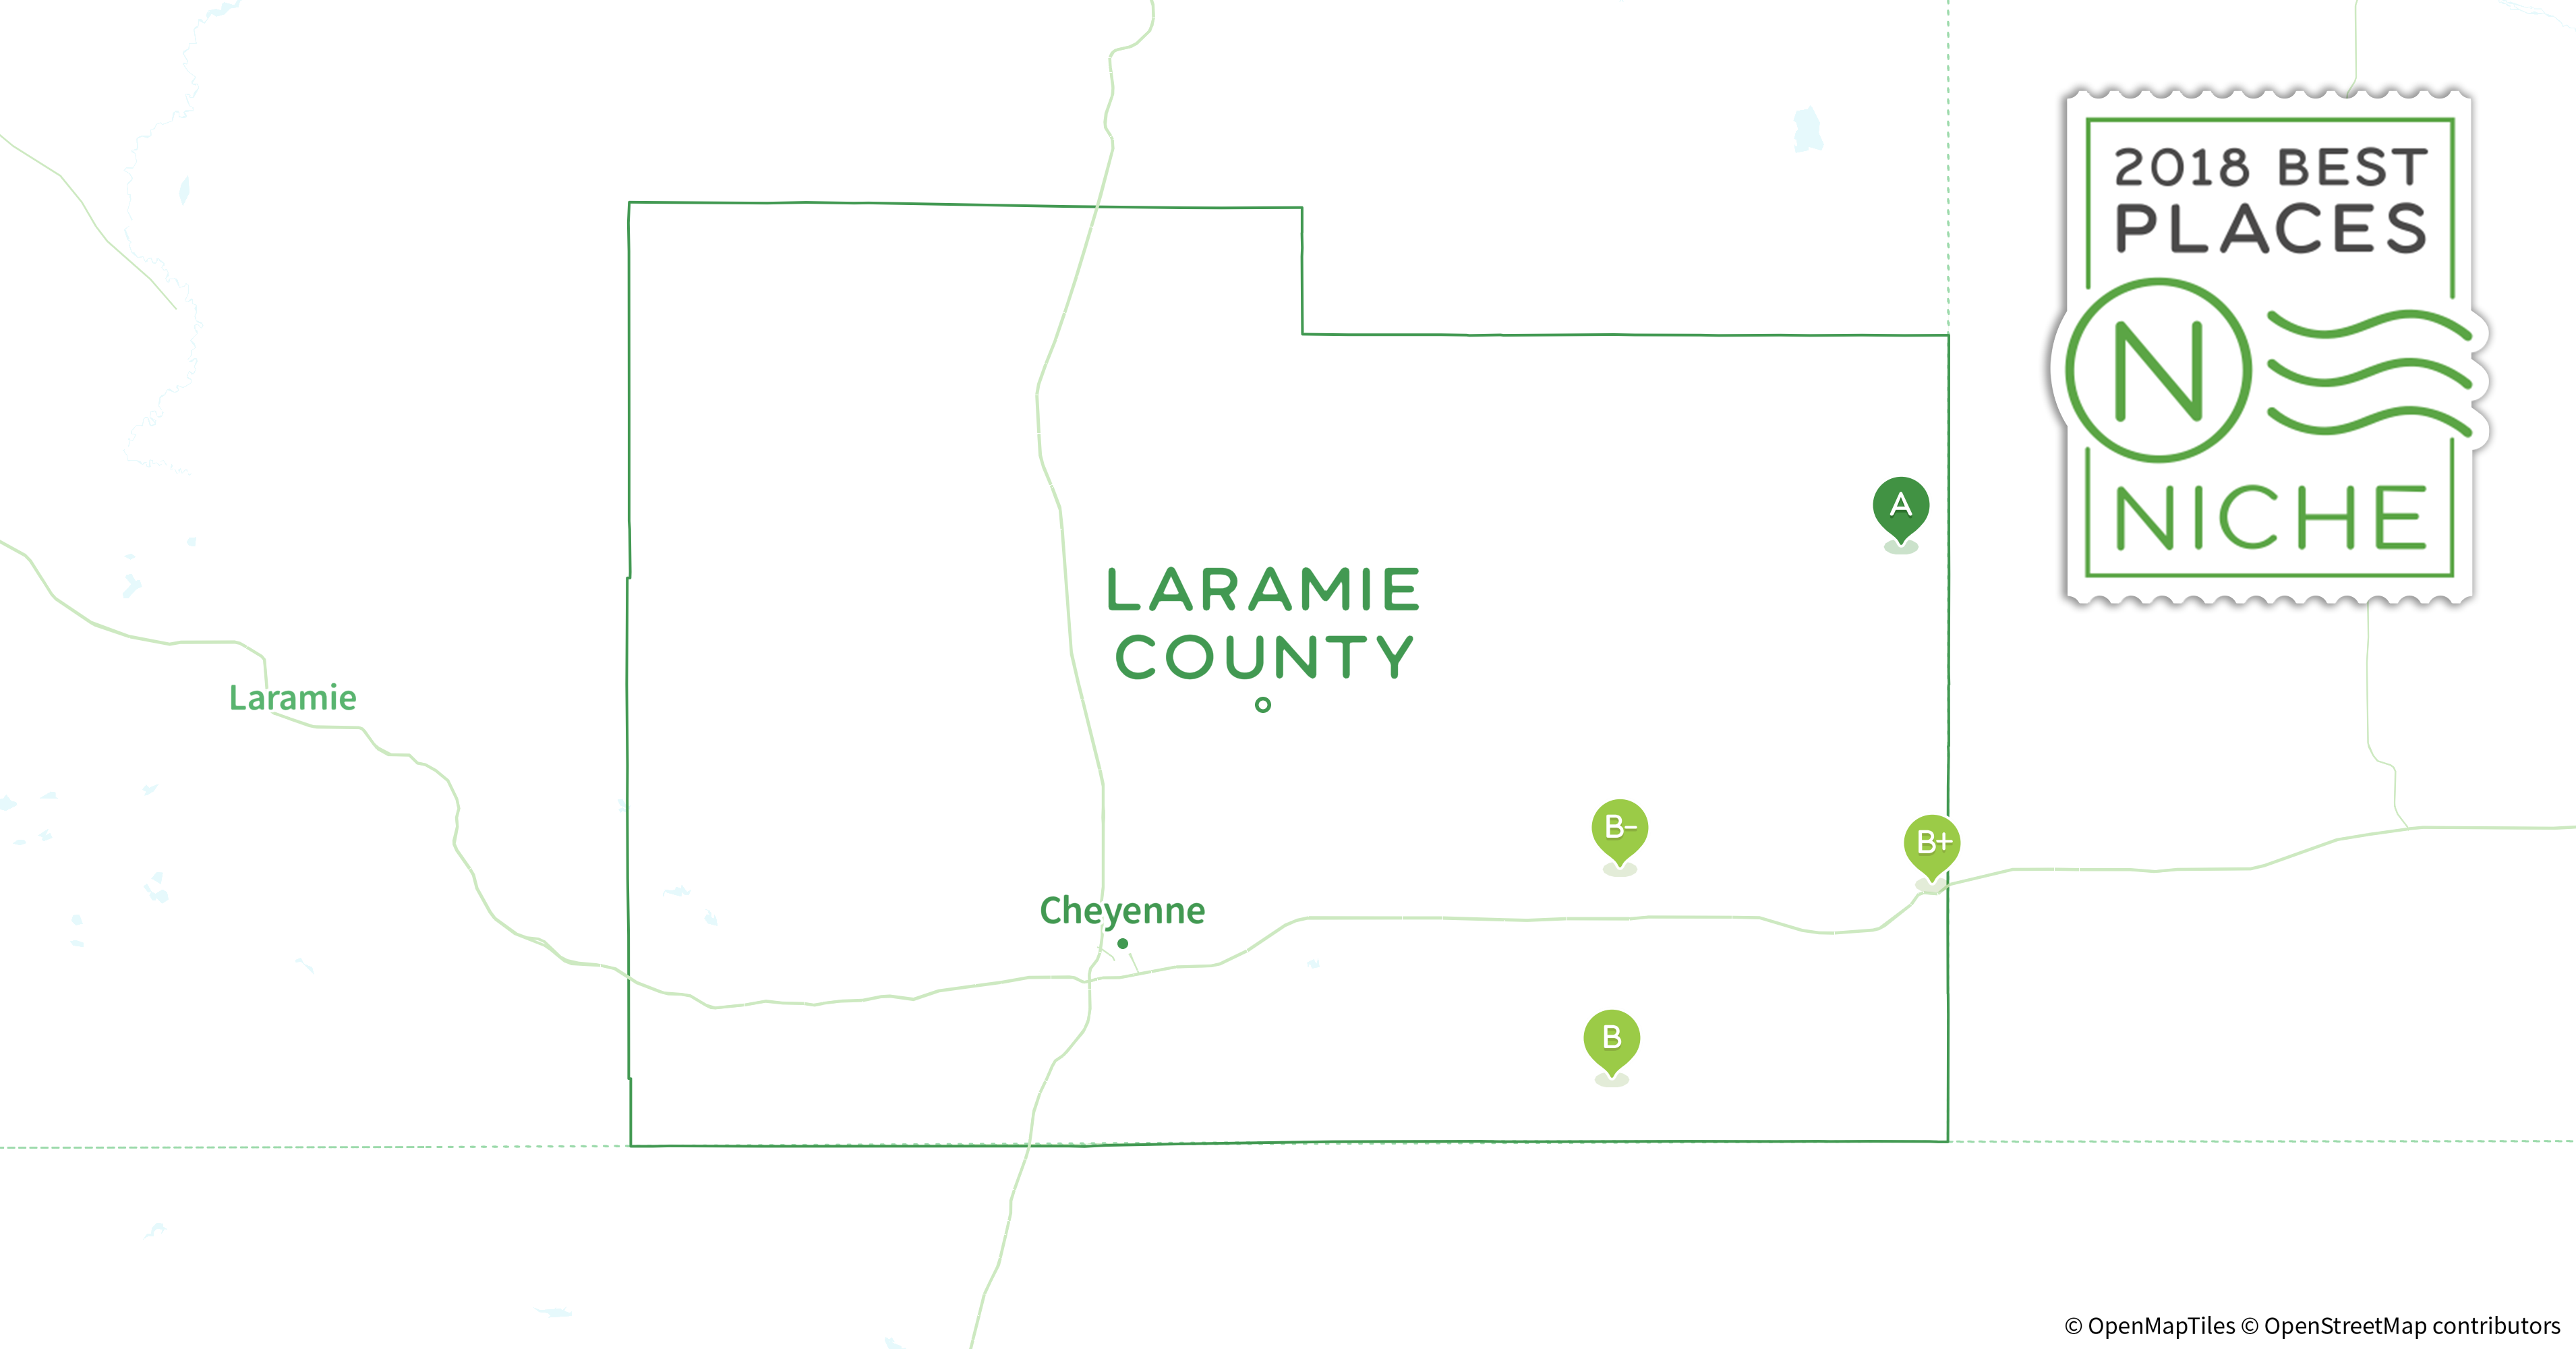 Genial 2018 Best Places To Live In Laramie County, WY   Niche